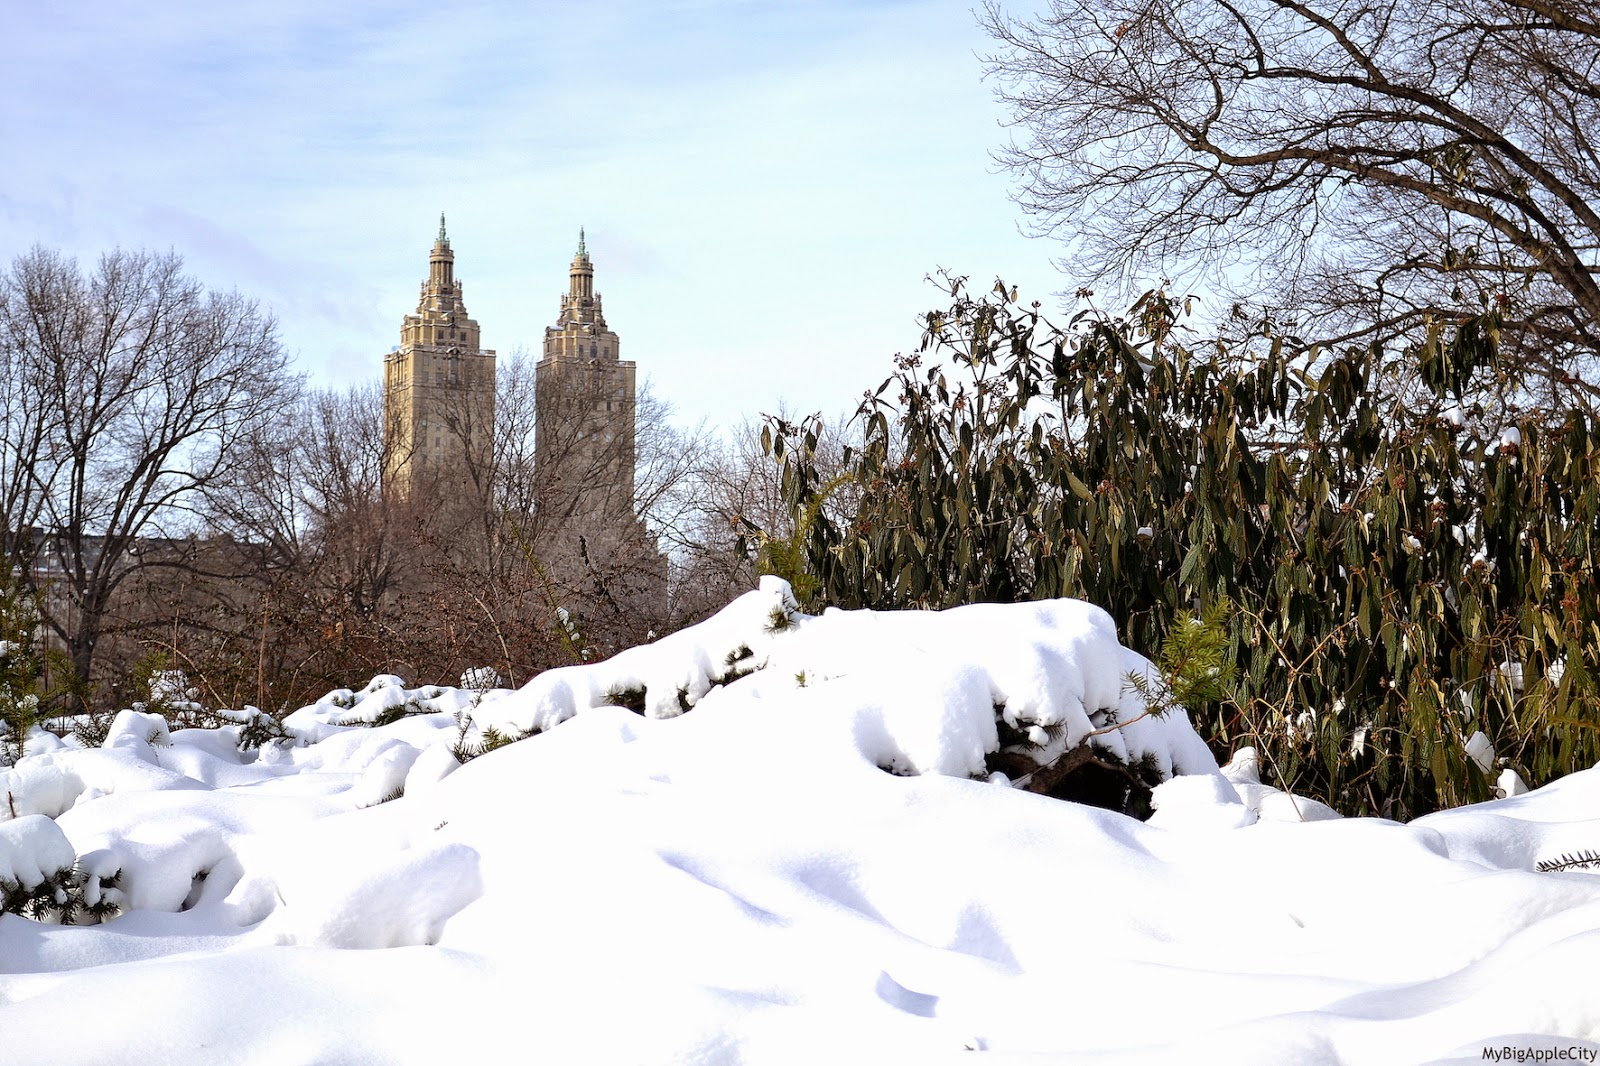 juno-2015-NYC-Blizzard-central-park-winter